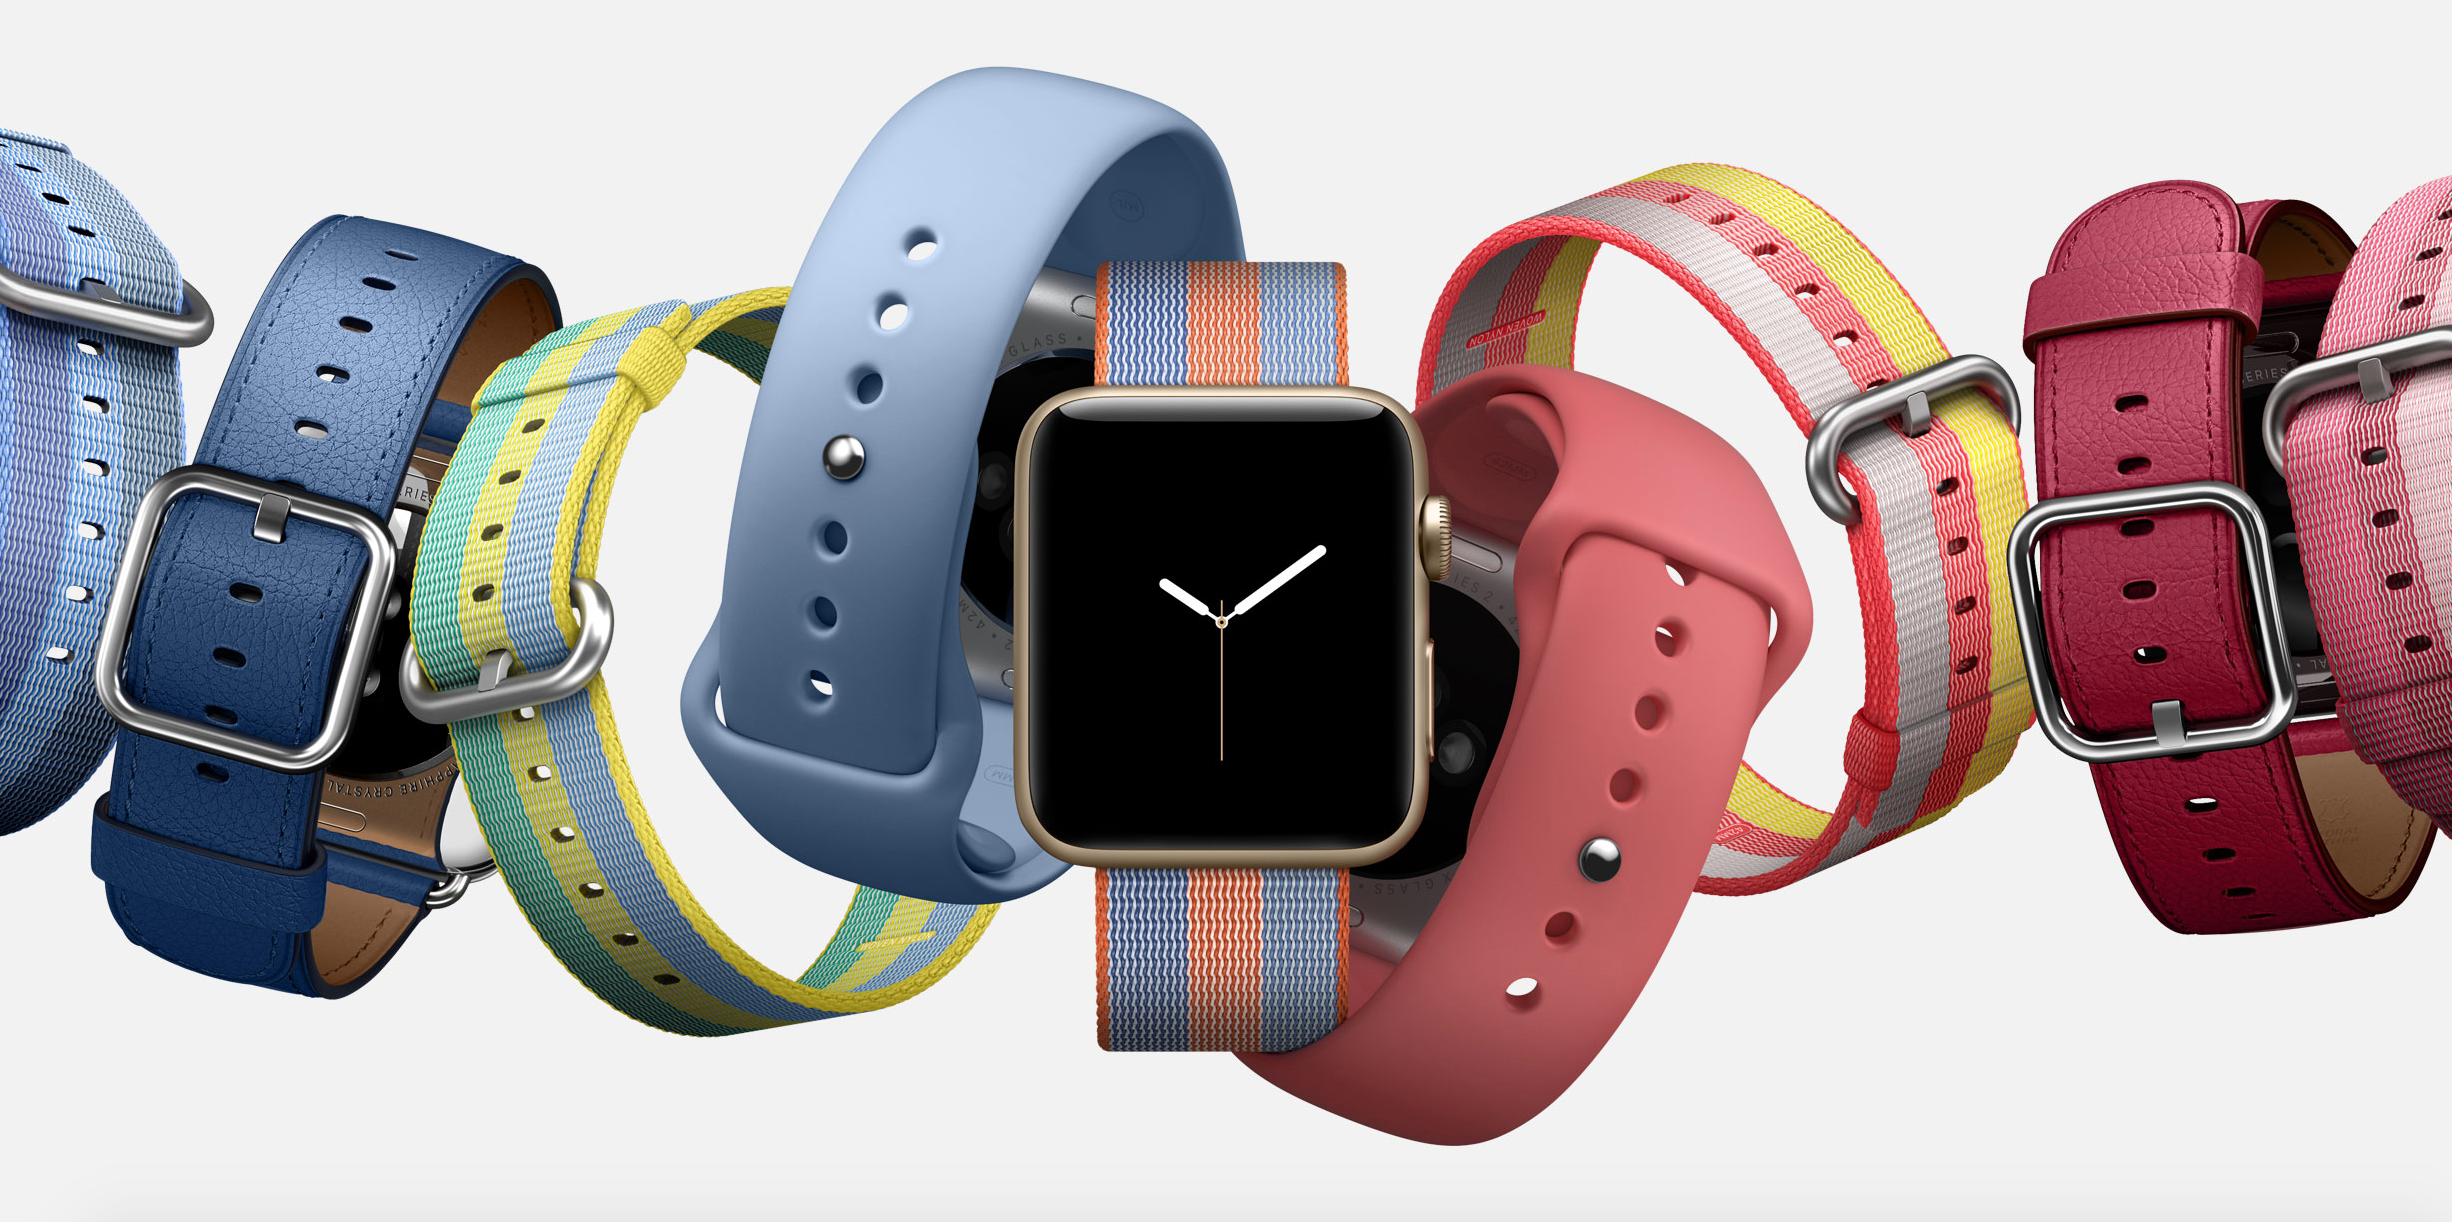 UBS: Apple Watch is Taking Over